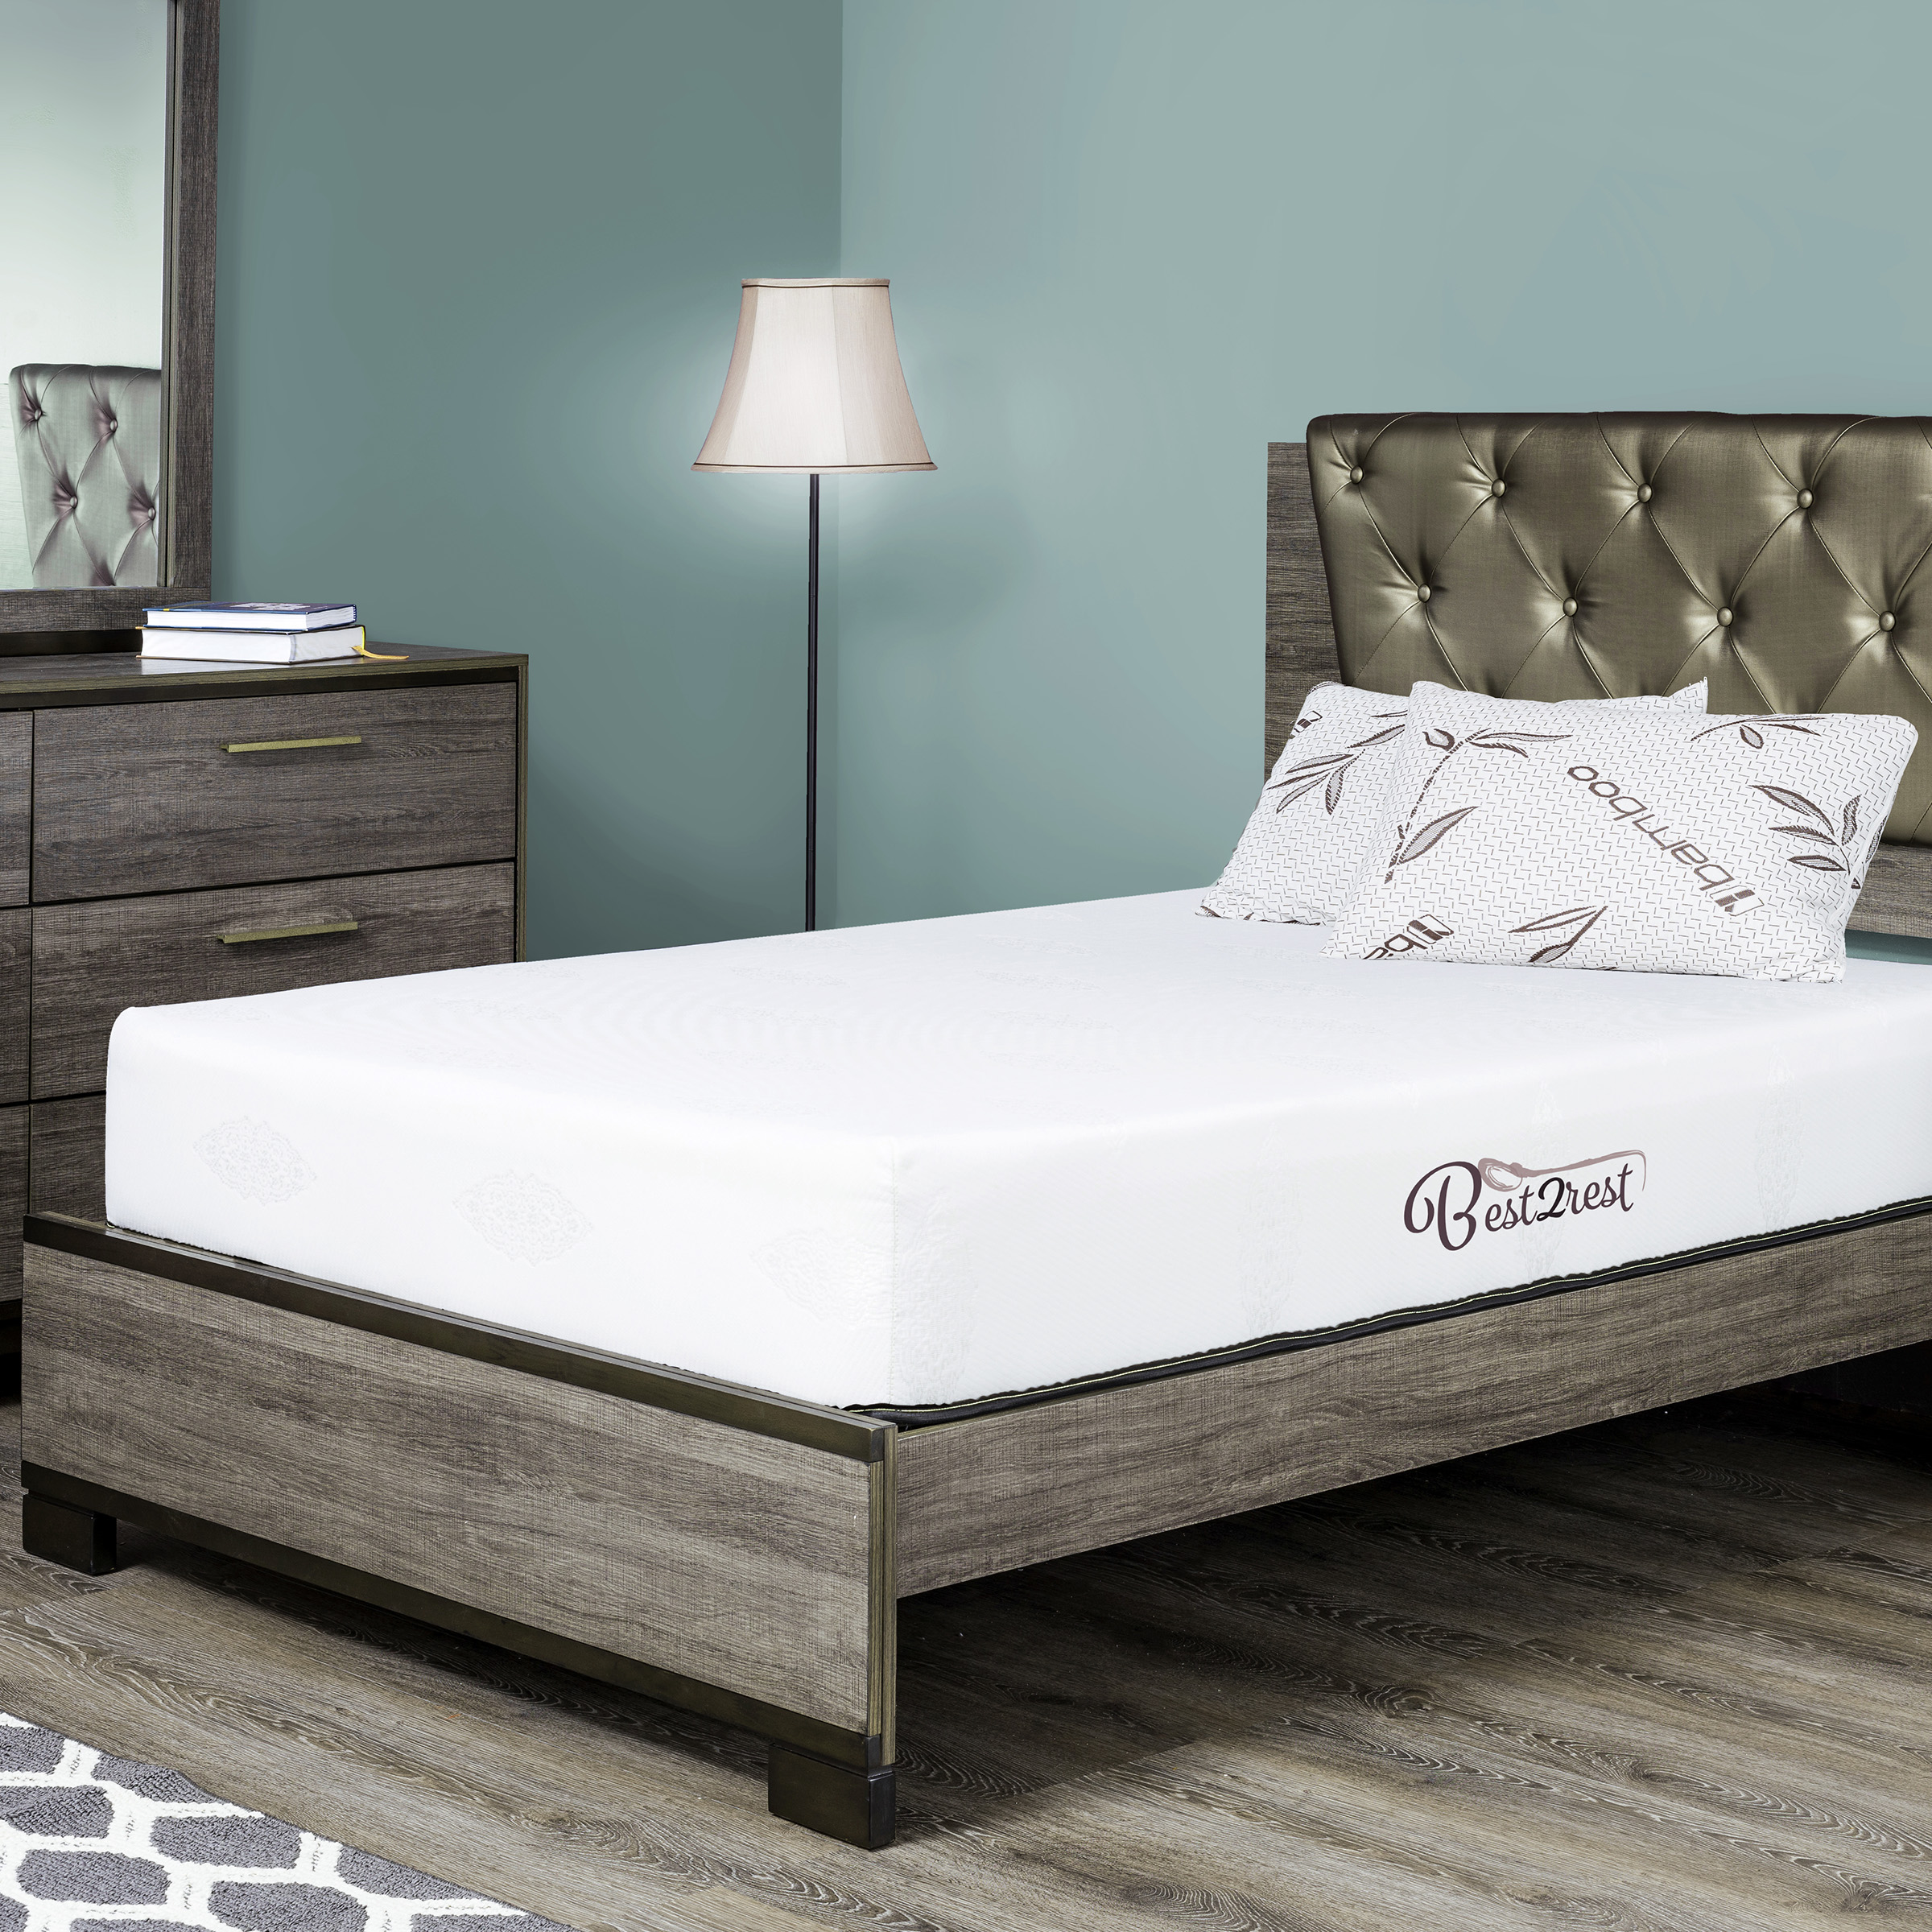 BEST 2 REST Queen Memory Foam Mattress 10 Inch With Cool Gel - Made In USA